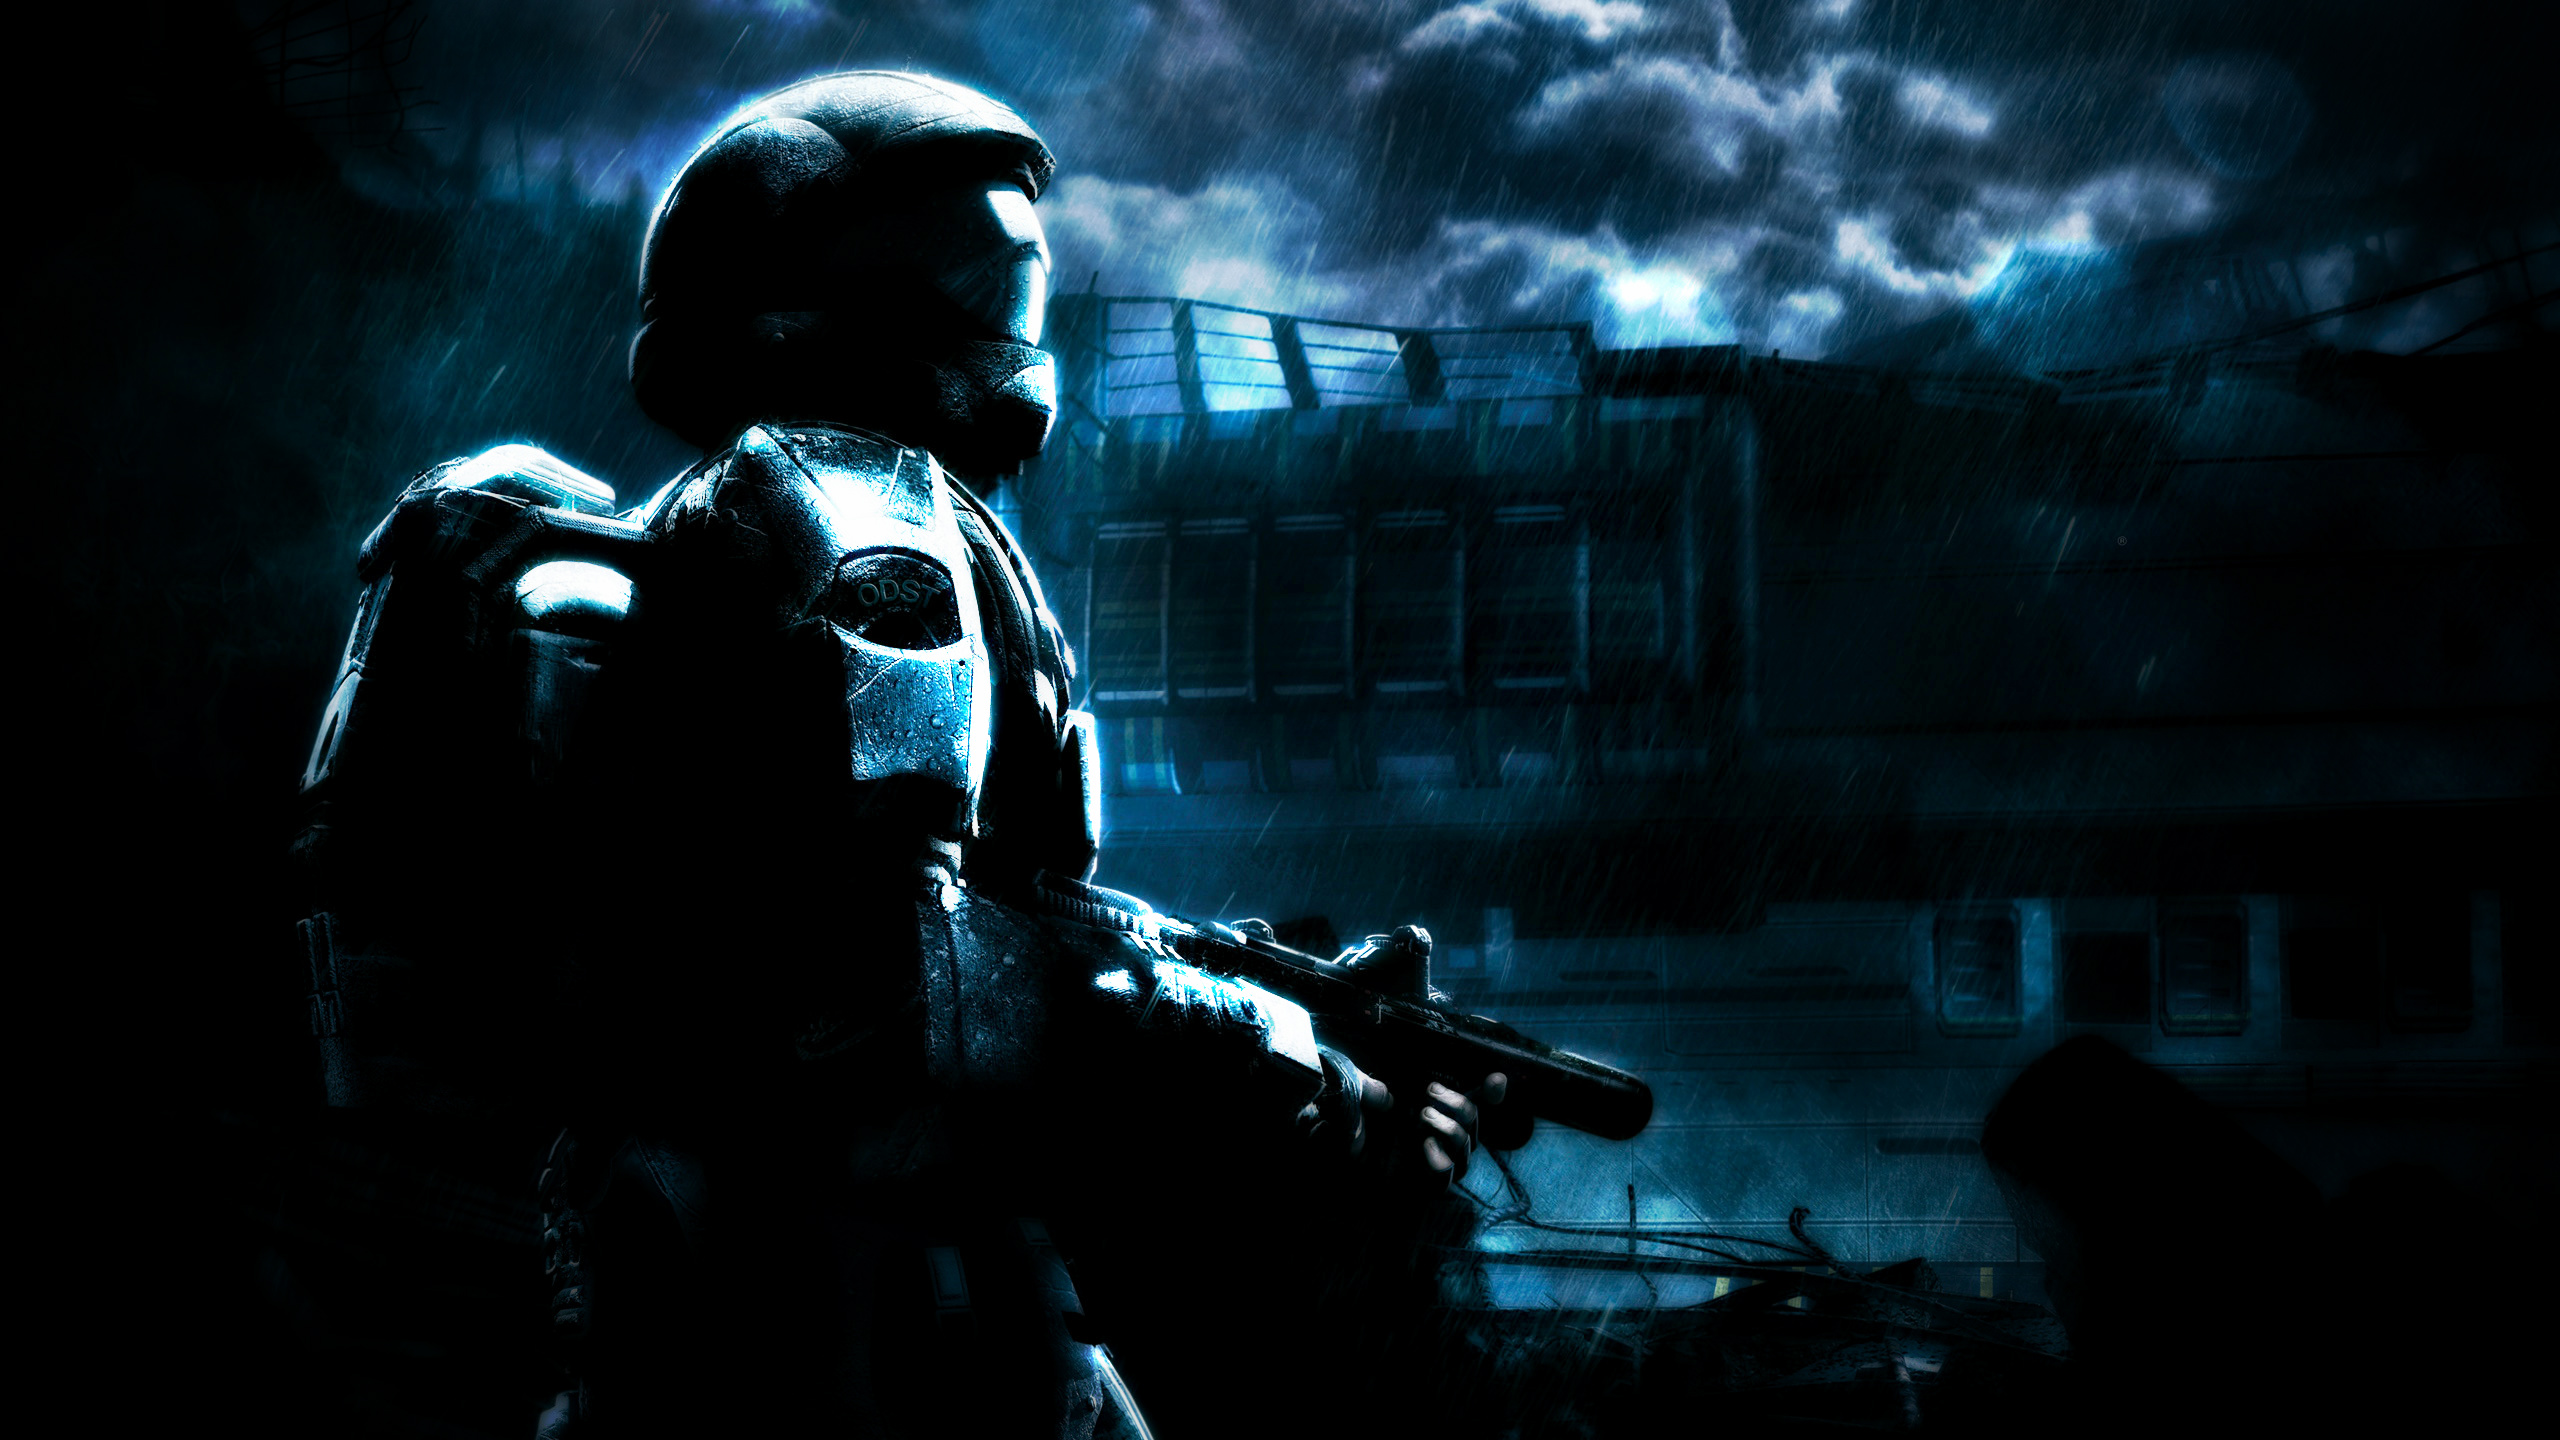 Halo 3: ODST Release Date Potentially Revealed for Master Chief